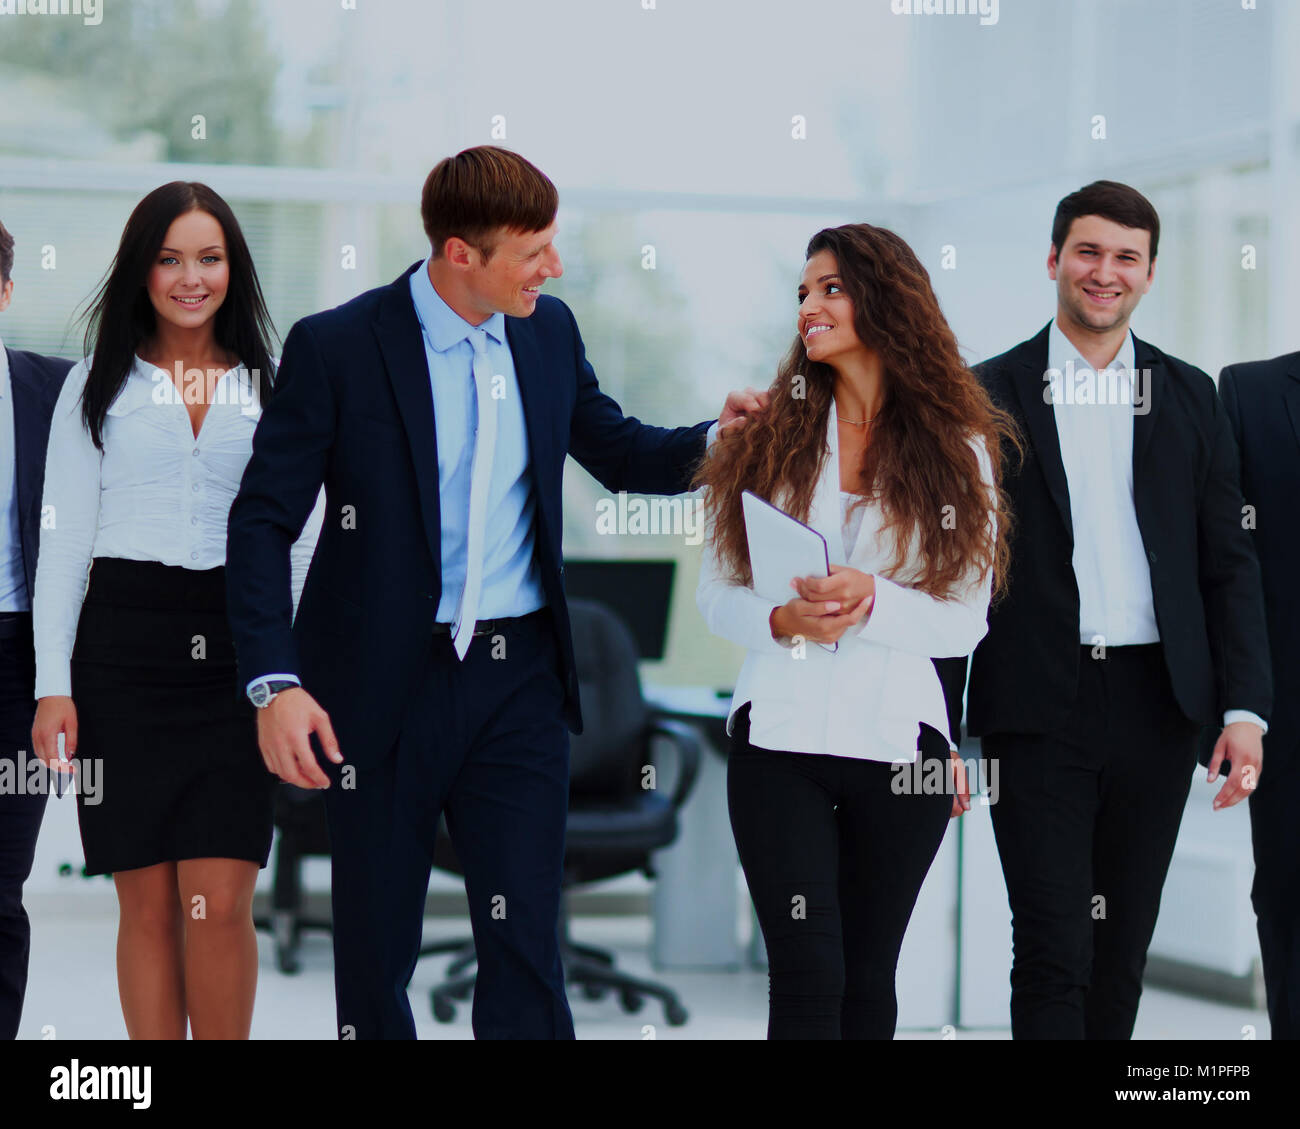 Team cheer up each other in the office. - Stock Image